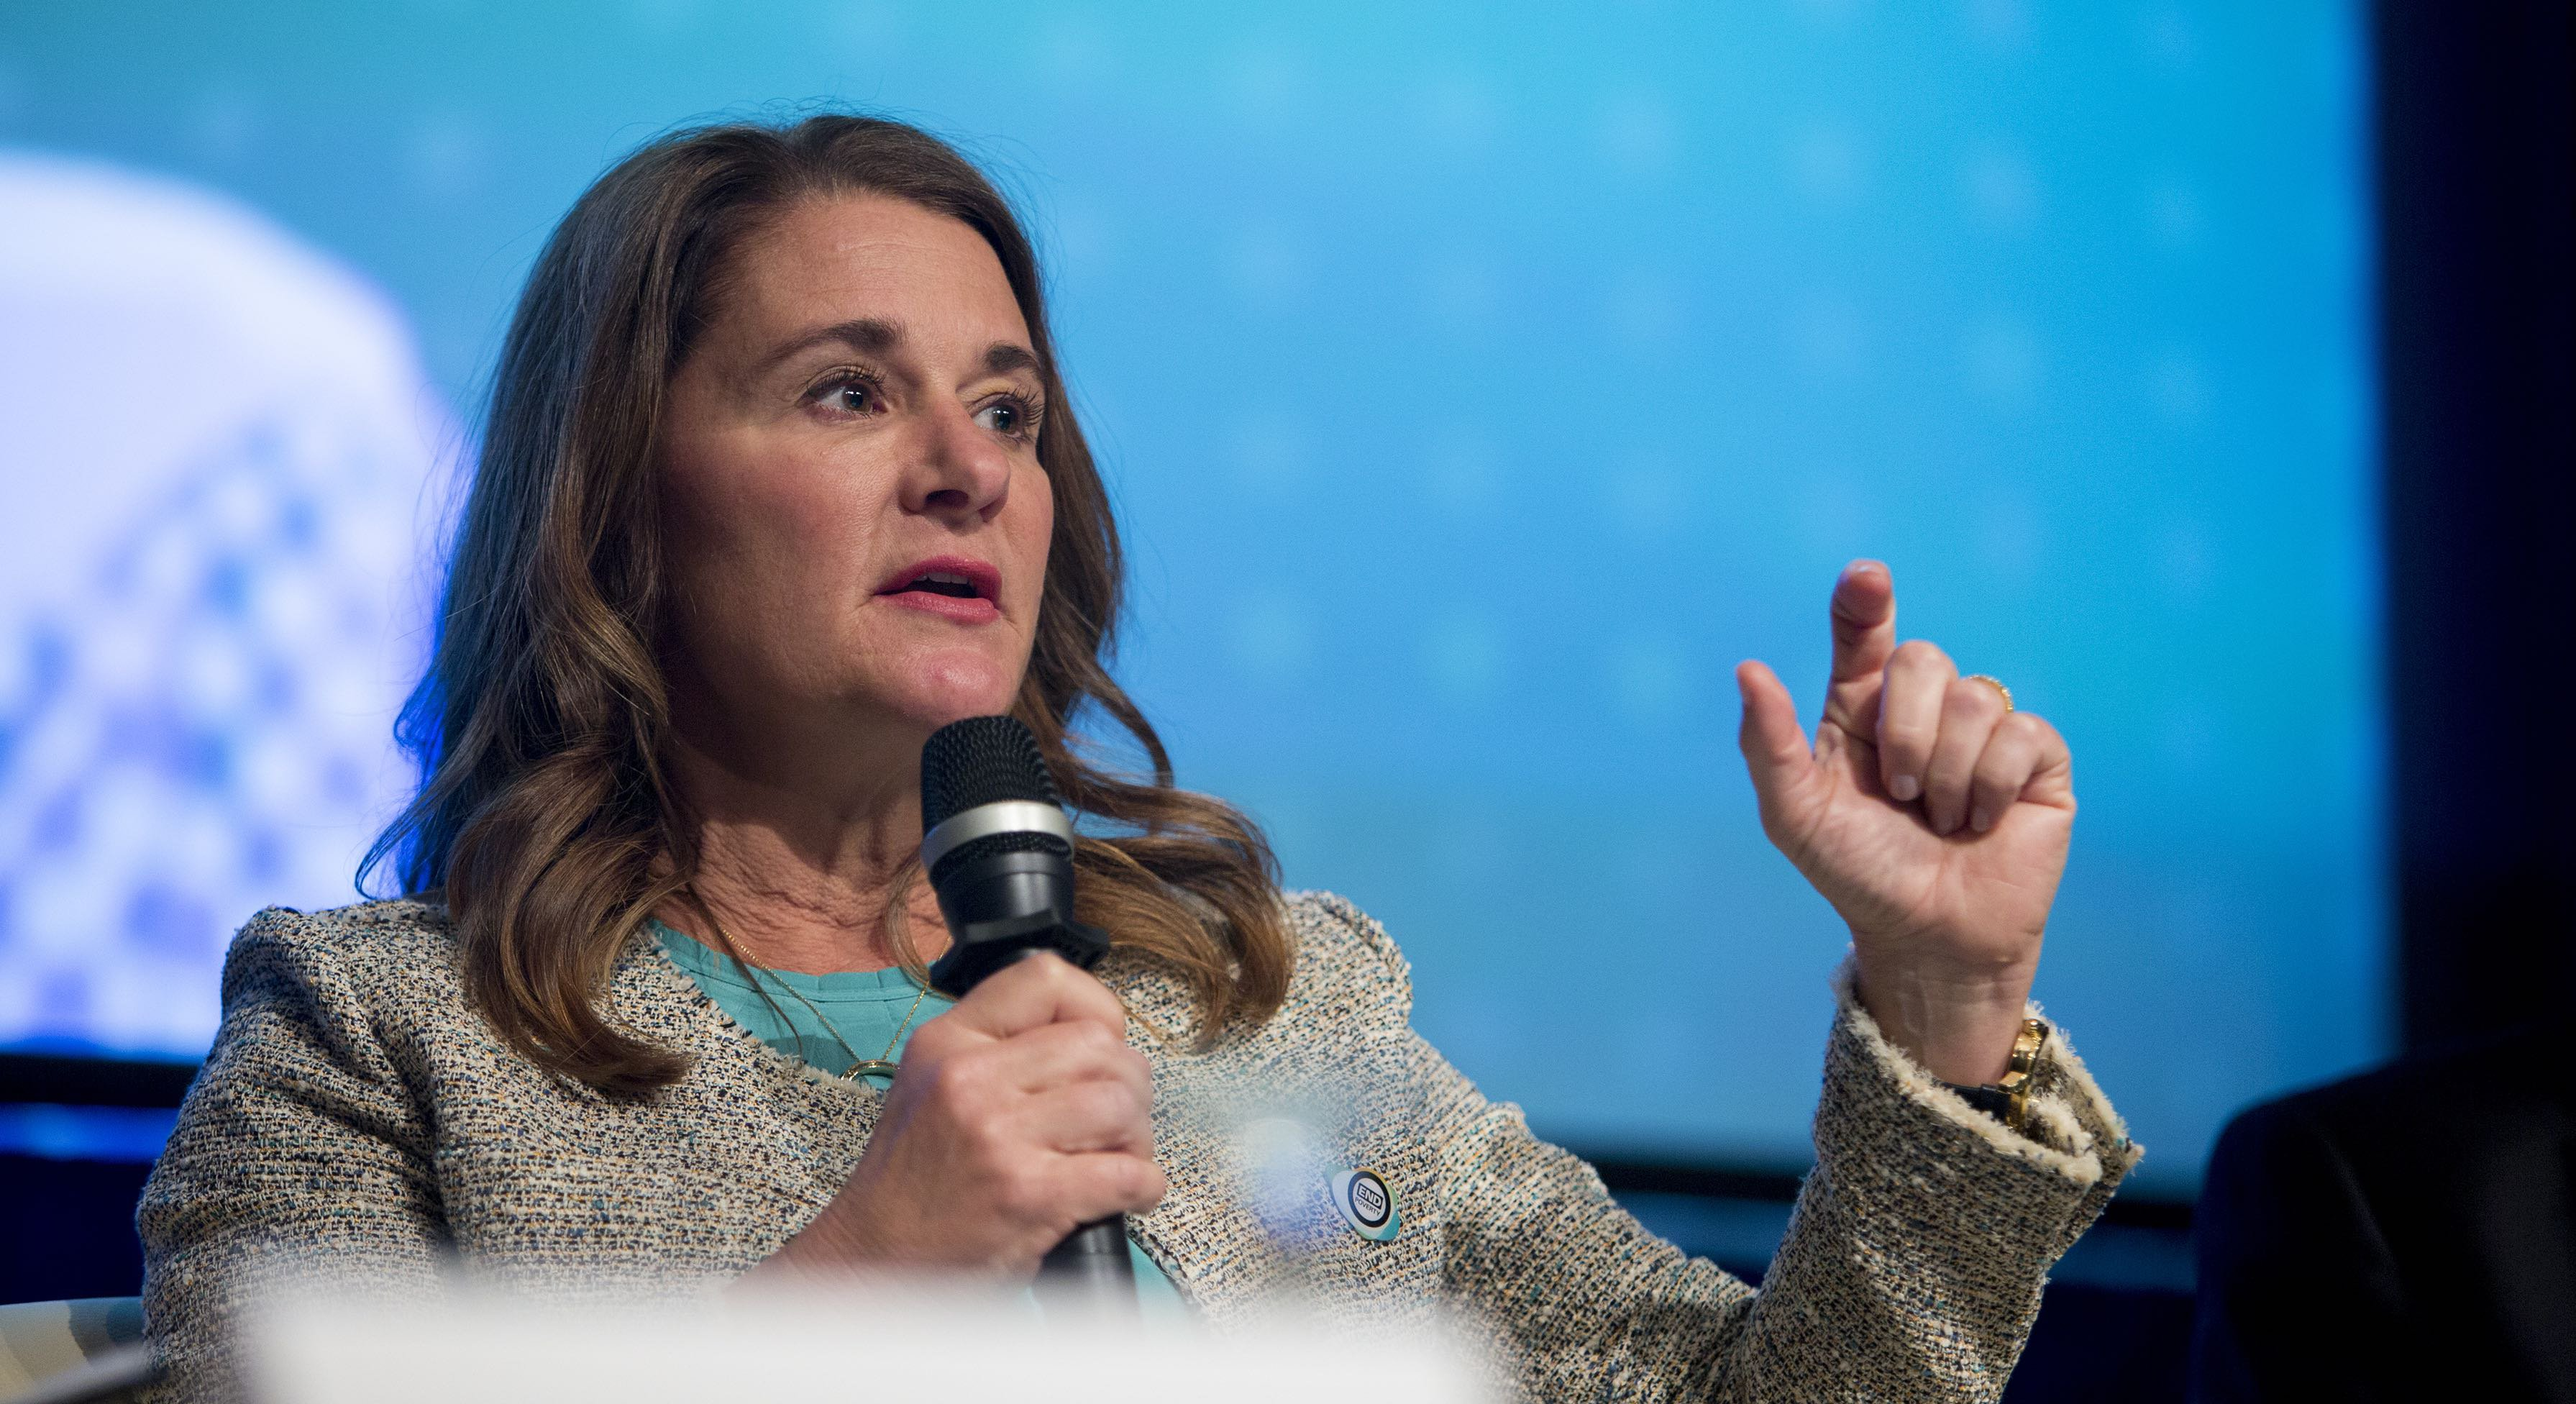 melinda gates world bank flickr.jpg